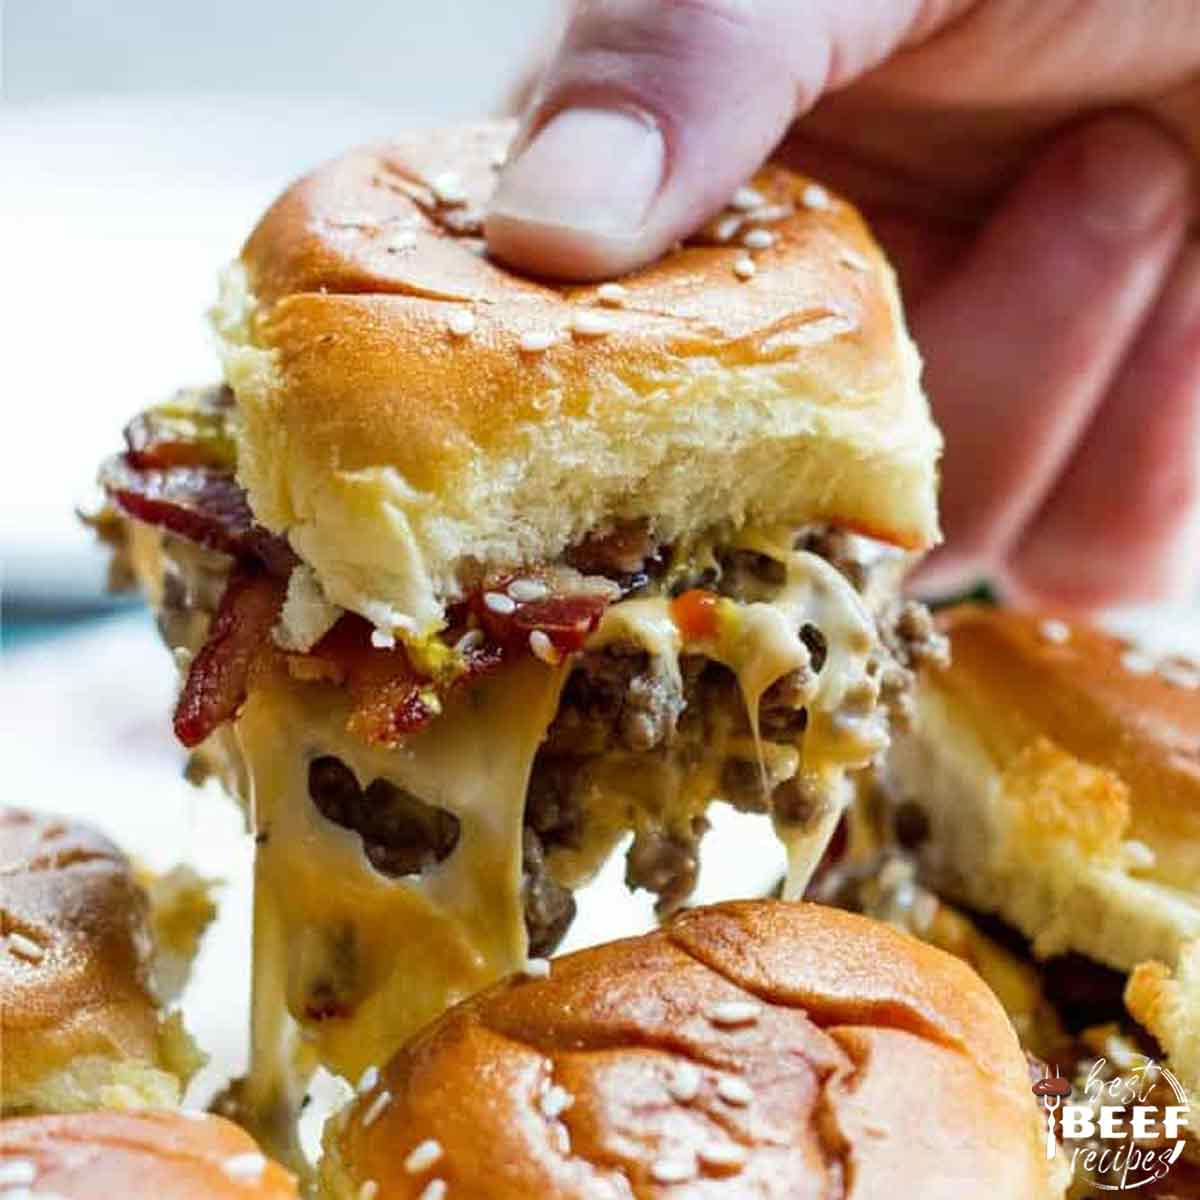 Lifting up a mini cheeseburger from the other cheeseburger sliders